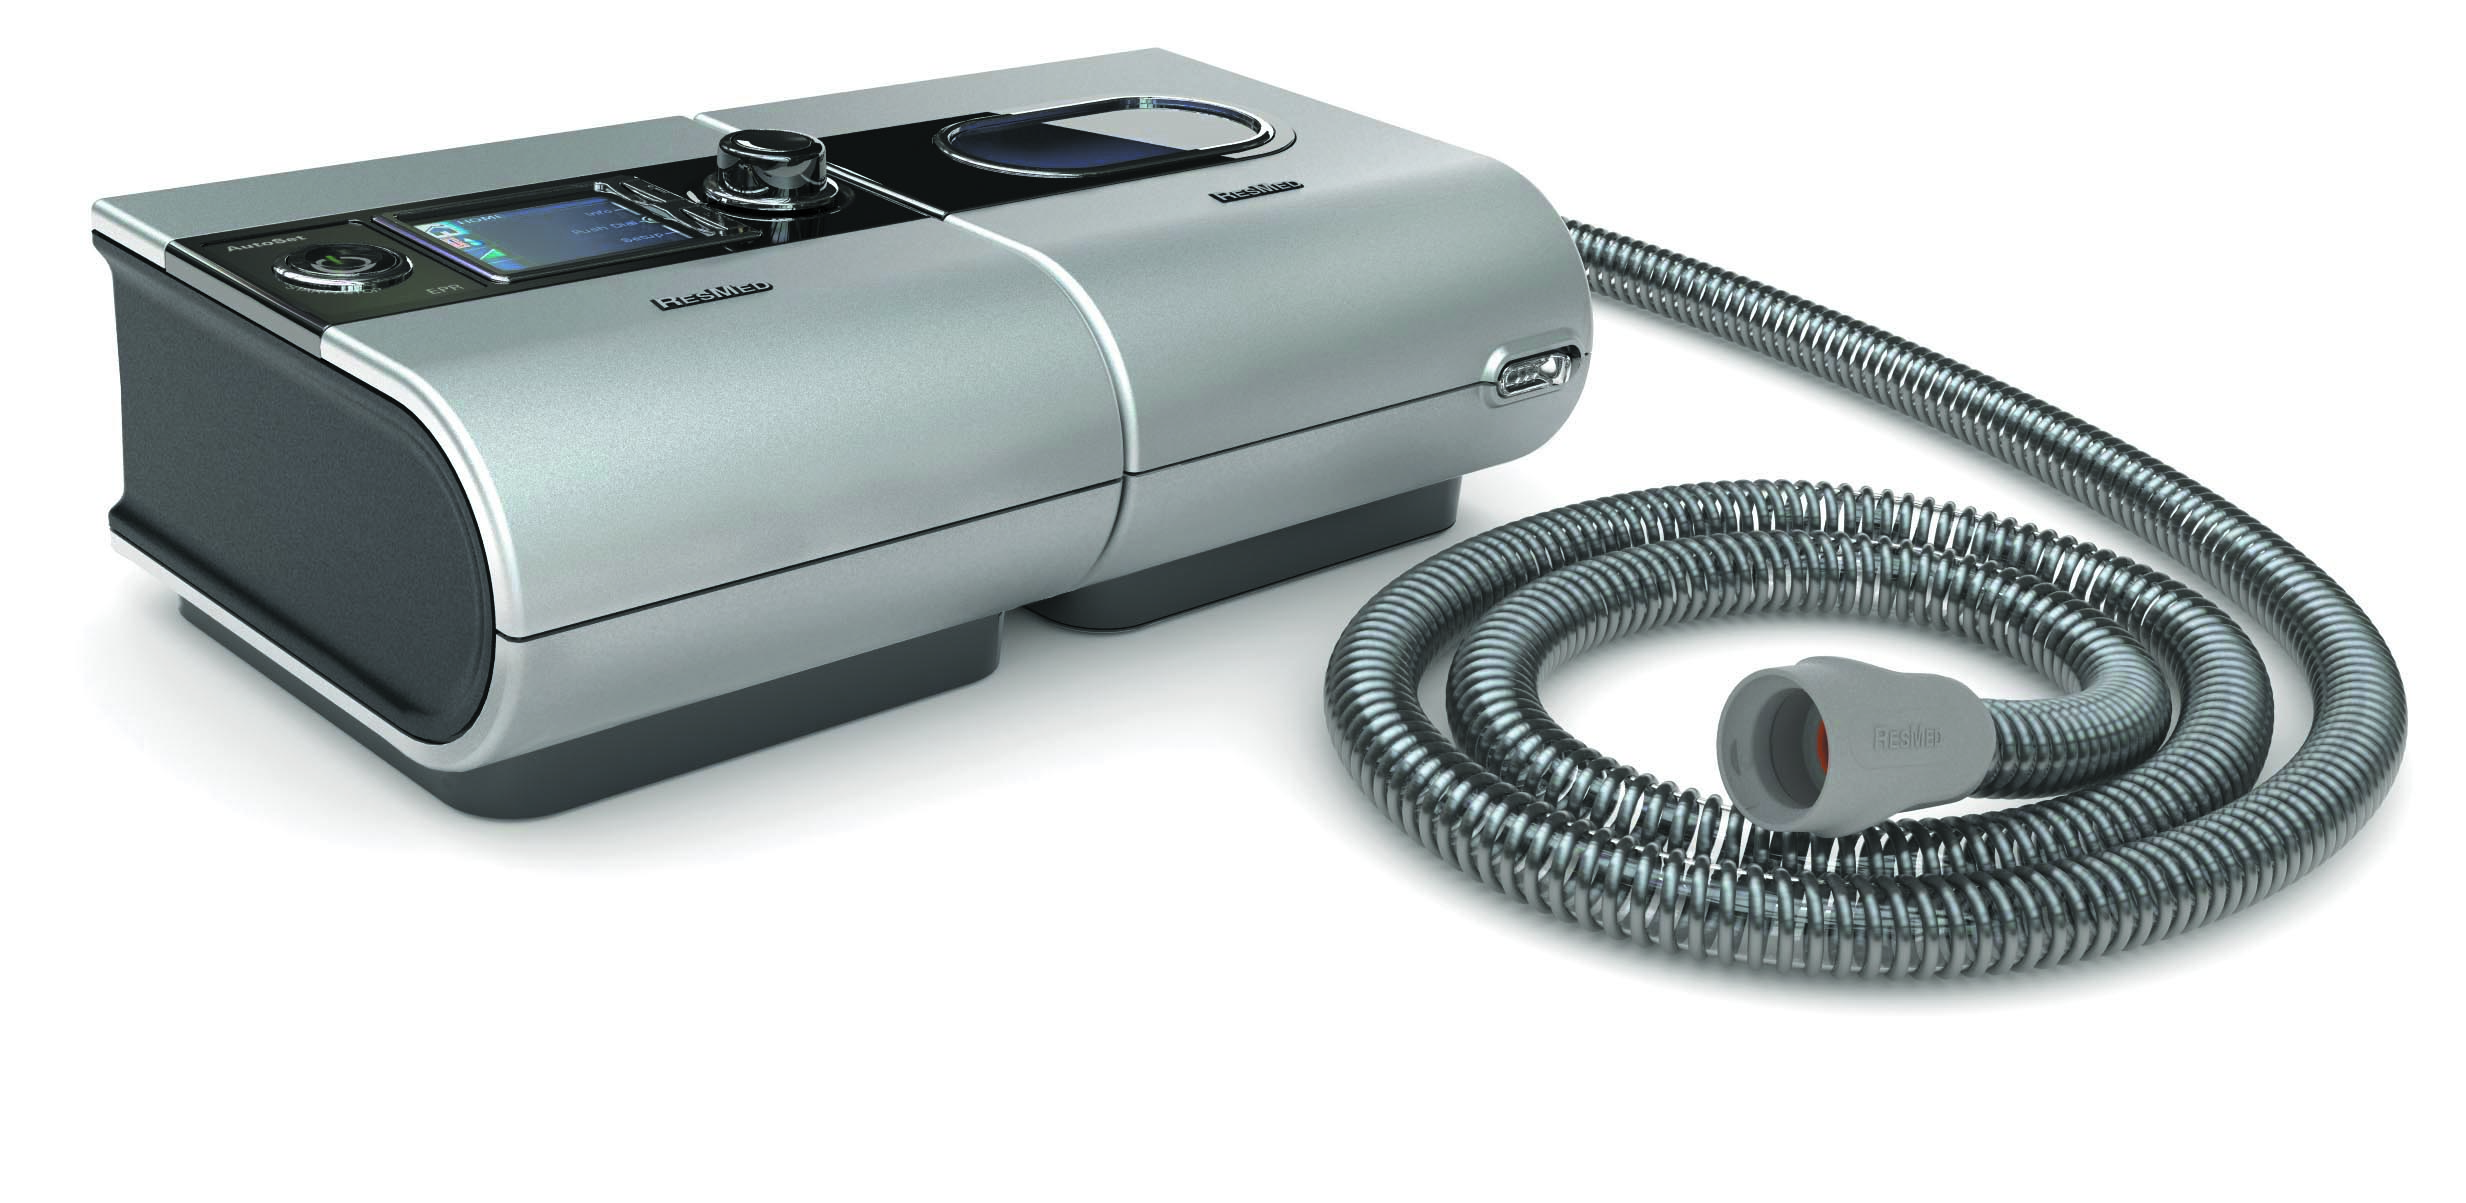 resmed-climate-line-tubing-with-s9-cpap